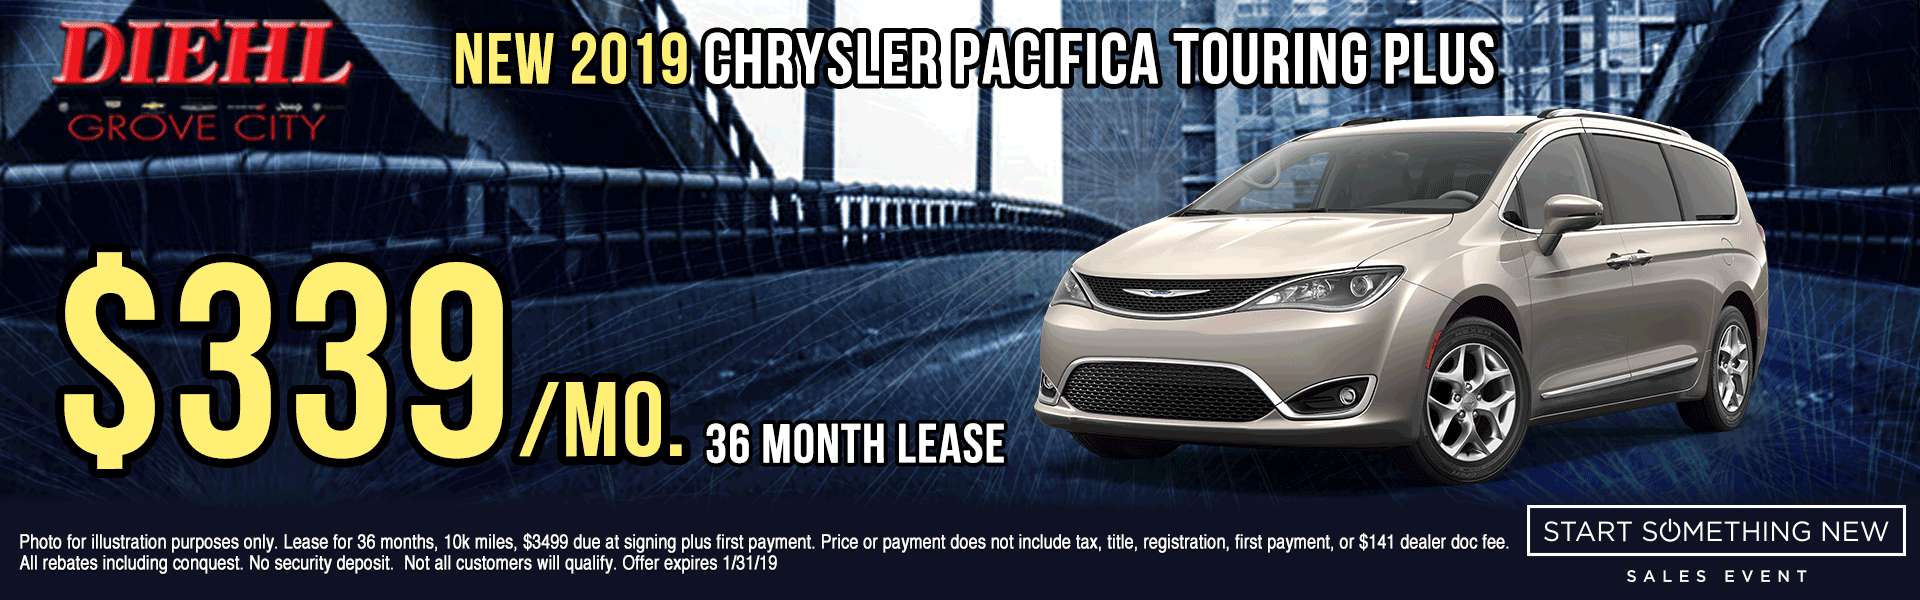 C271---2019-CHRYSLER-PACIFICA-TOURING-PLUS Start Something New Sales Event Chrysler Specials Dodge Specials Jeep Specials RAM Specials grove city specials Diehl specials Diehl Automotive grove city lease specials